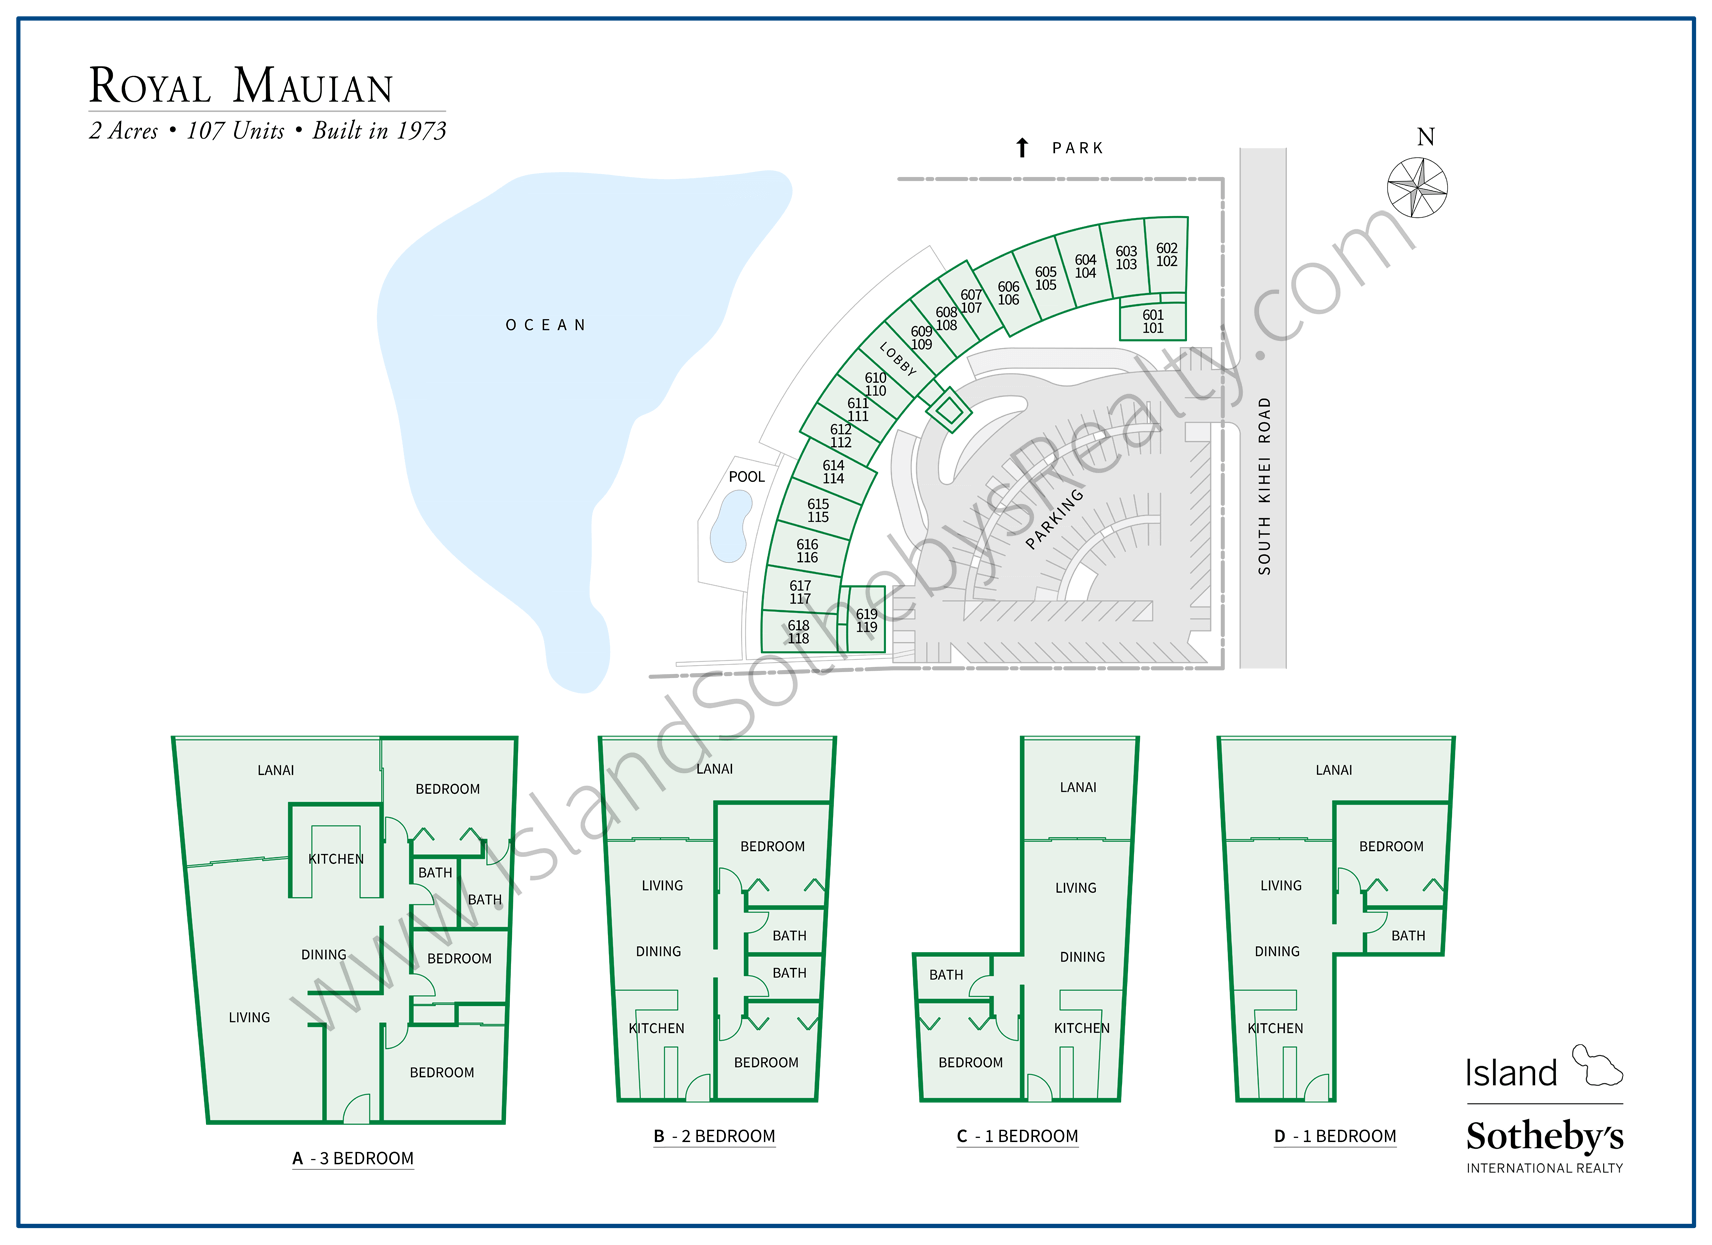 Map of Royal Mauian Kihei